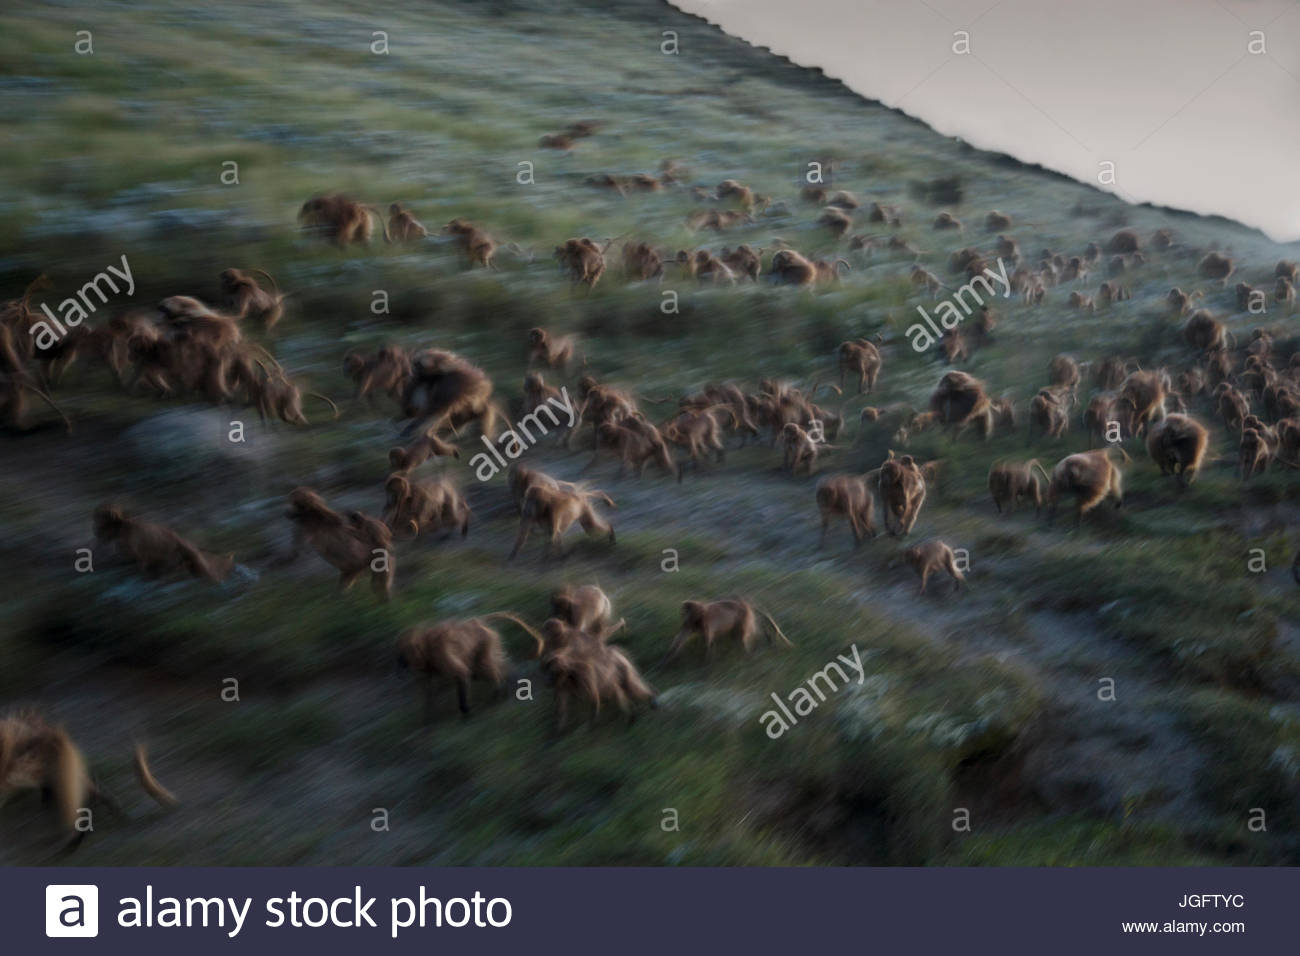 As darkness falls on Guassa, geladas break into a run down a slope toward their sleeping cliffs. - Stock Image